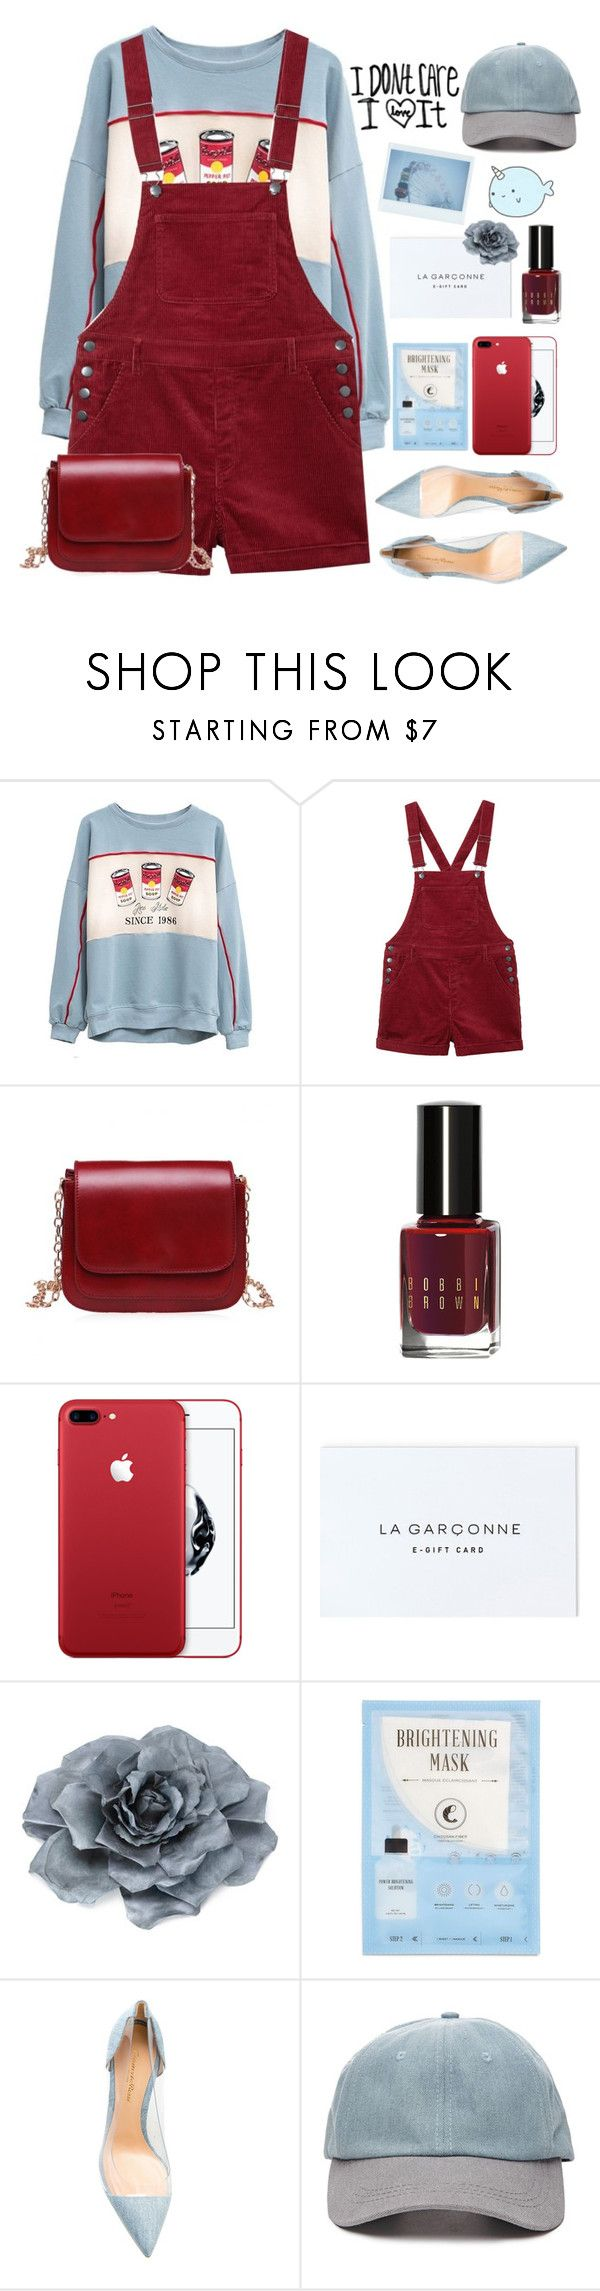 """""""🍟✨."""" by parkmona ❤ liked on Polyvore featuring Monki, Bobbi Brown Cosmetics, Monsoon, Kocostar, Gianvito Rossi and Forever 21"""